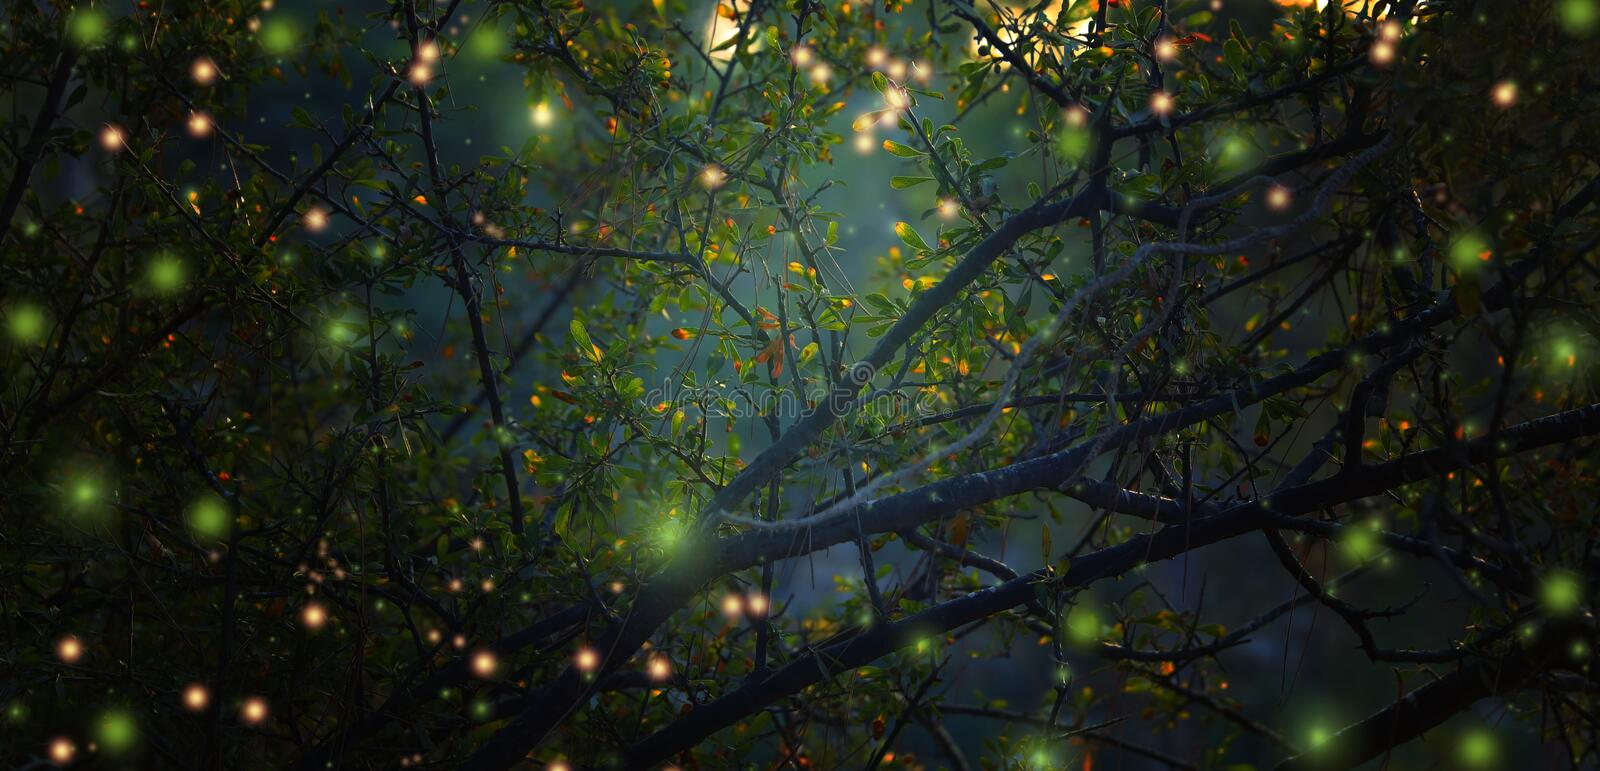 Abstract and magical image of Firefly flying in the night forest stock images